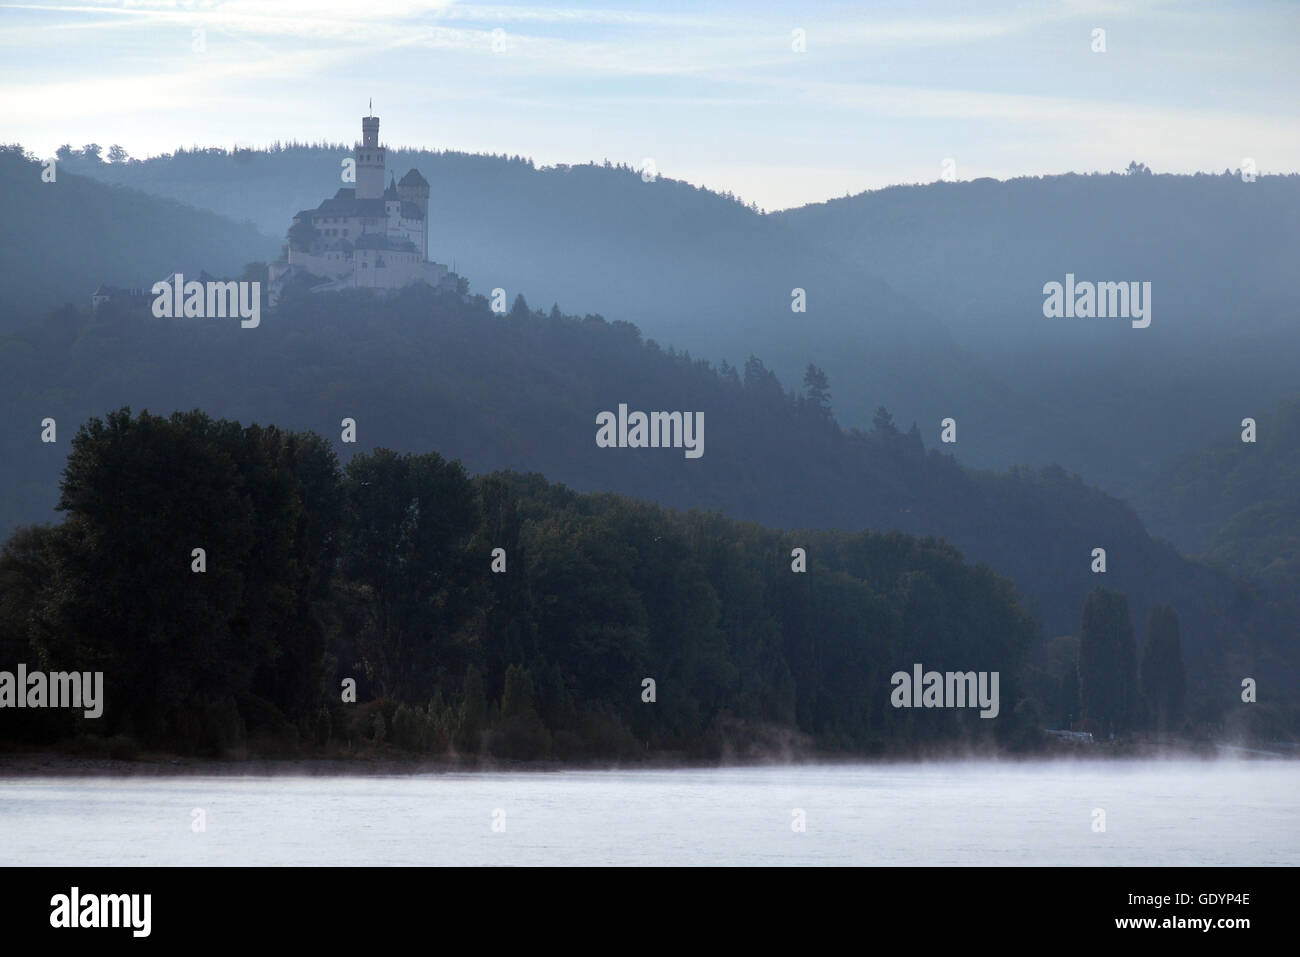 The Marksburg castle overlooking the river Rhine, Germany - Stock Image